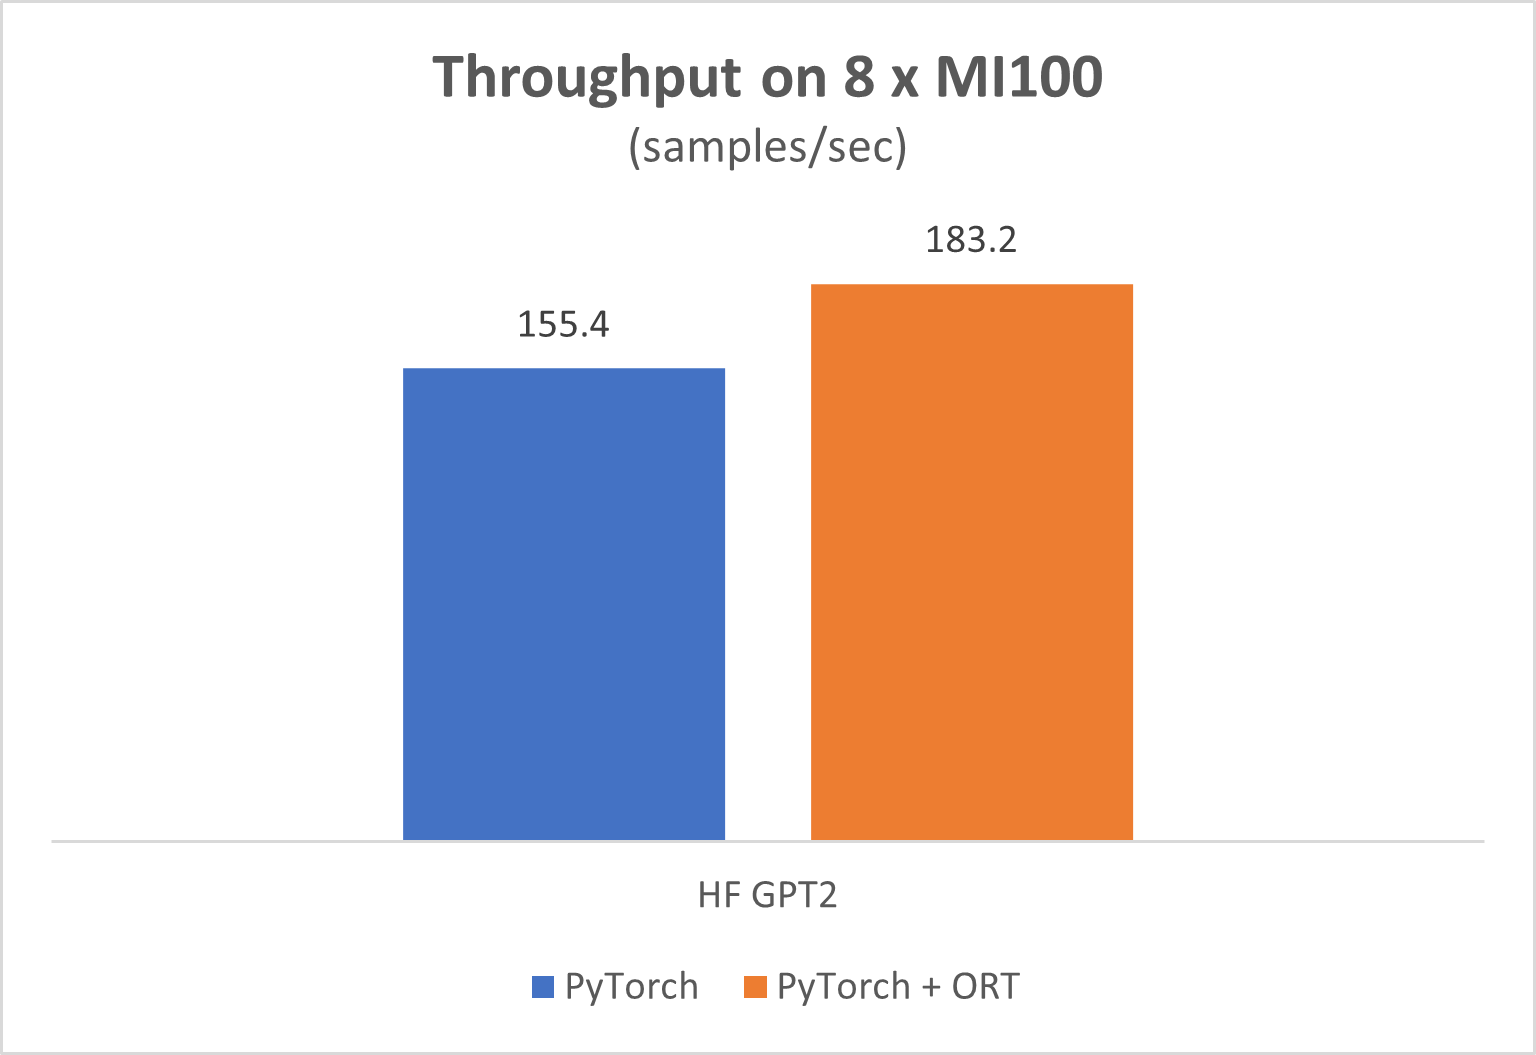 Using ONNX runtime gets 18 percent perf gains over stand-alone PyTorch